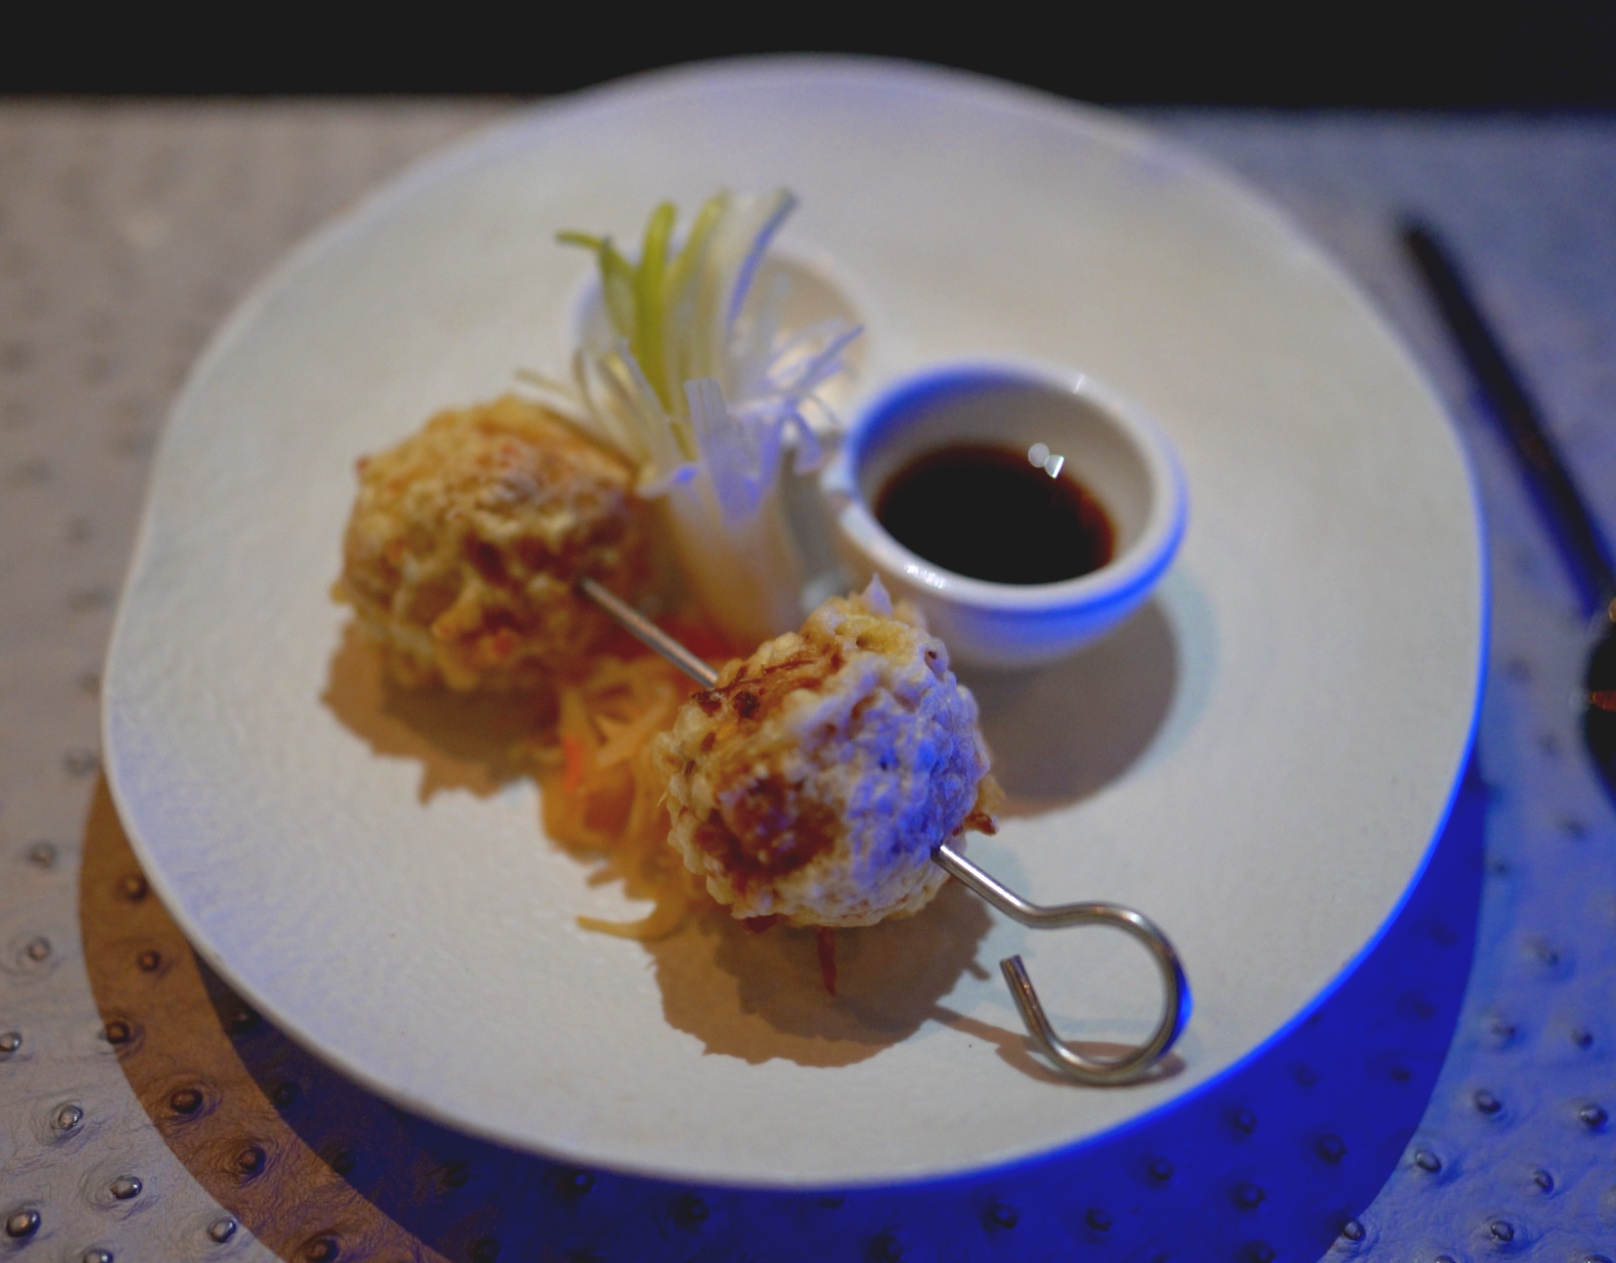 Mouth watering delicious King Crab Tempura.